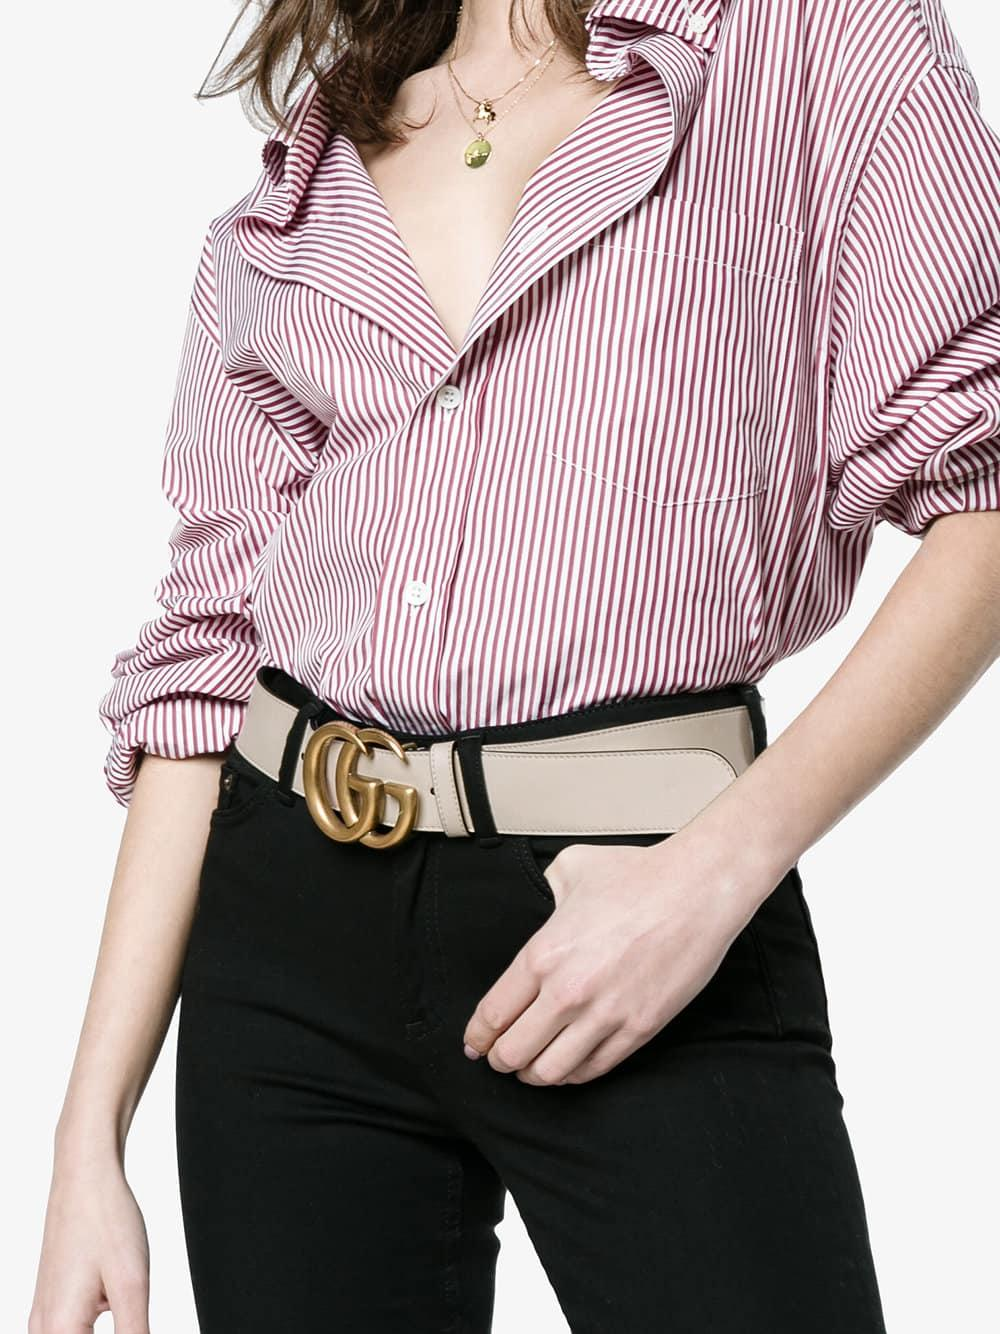 7de7a15e2 Lyst - Gucci White Leather Belt With Double G Buckle in White - Save 22%